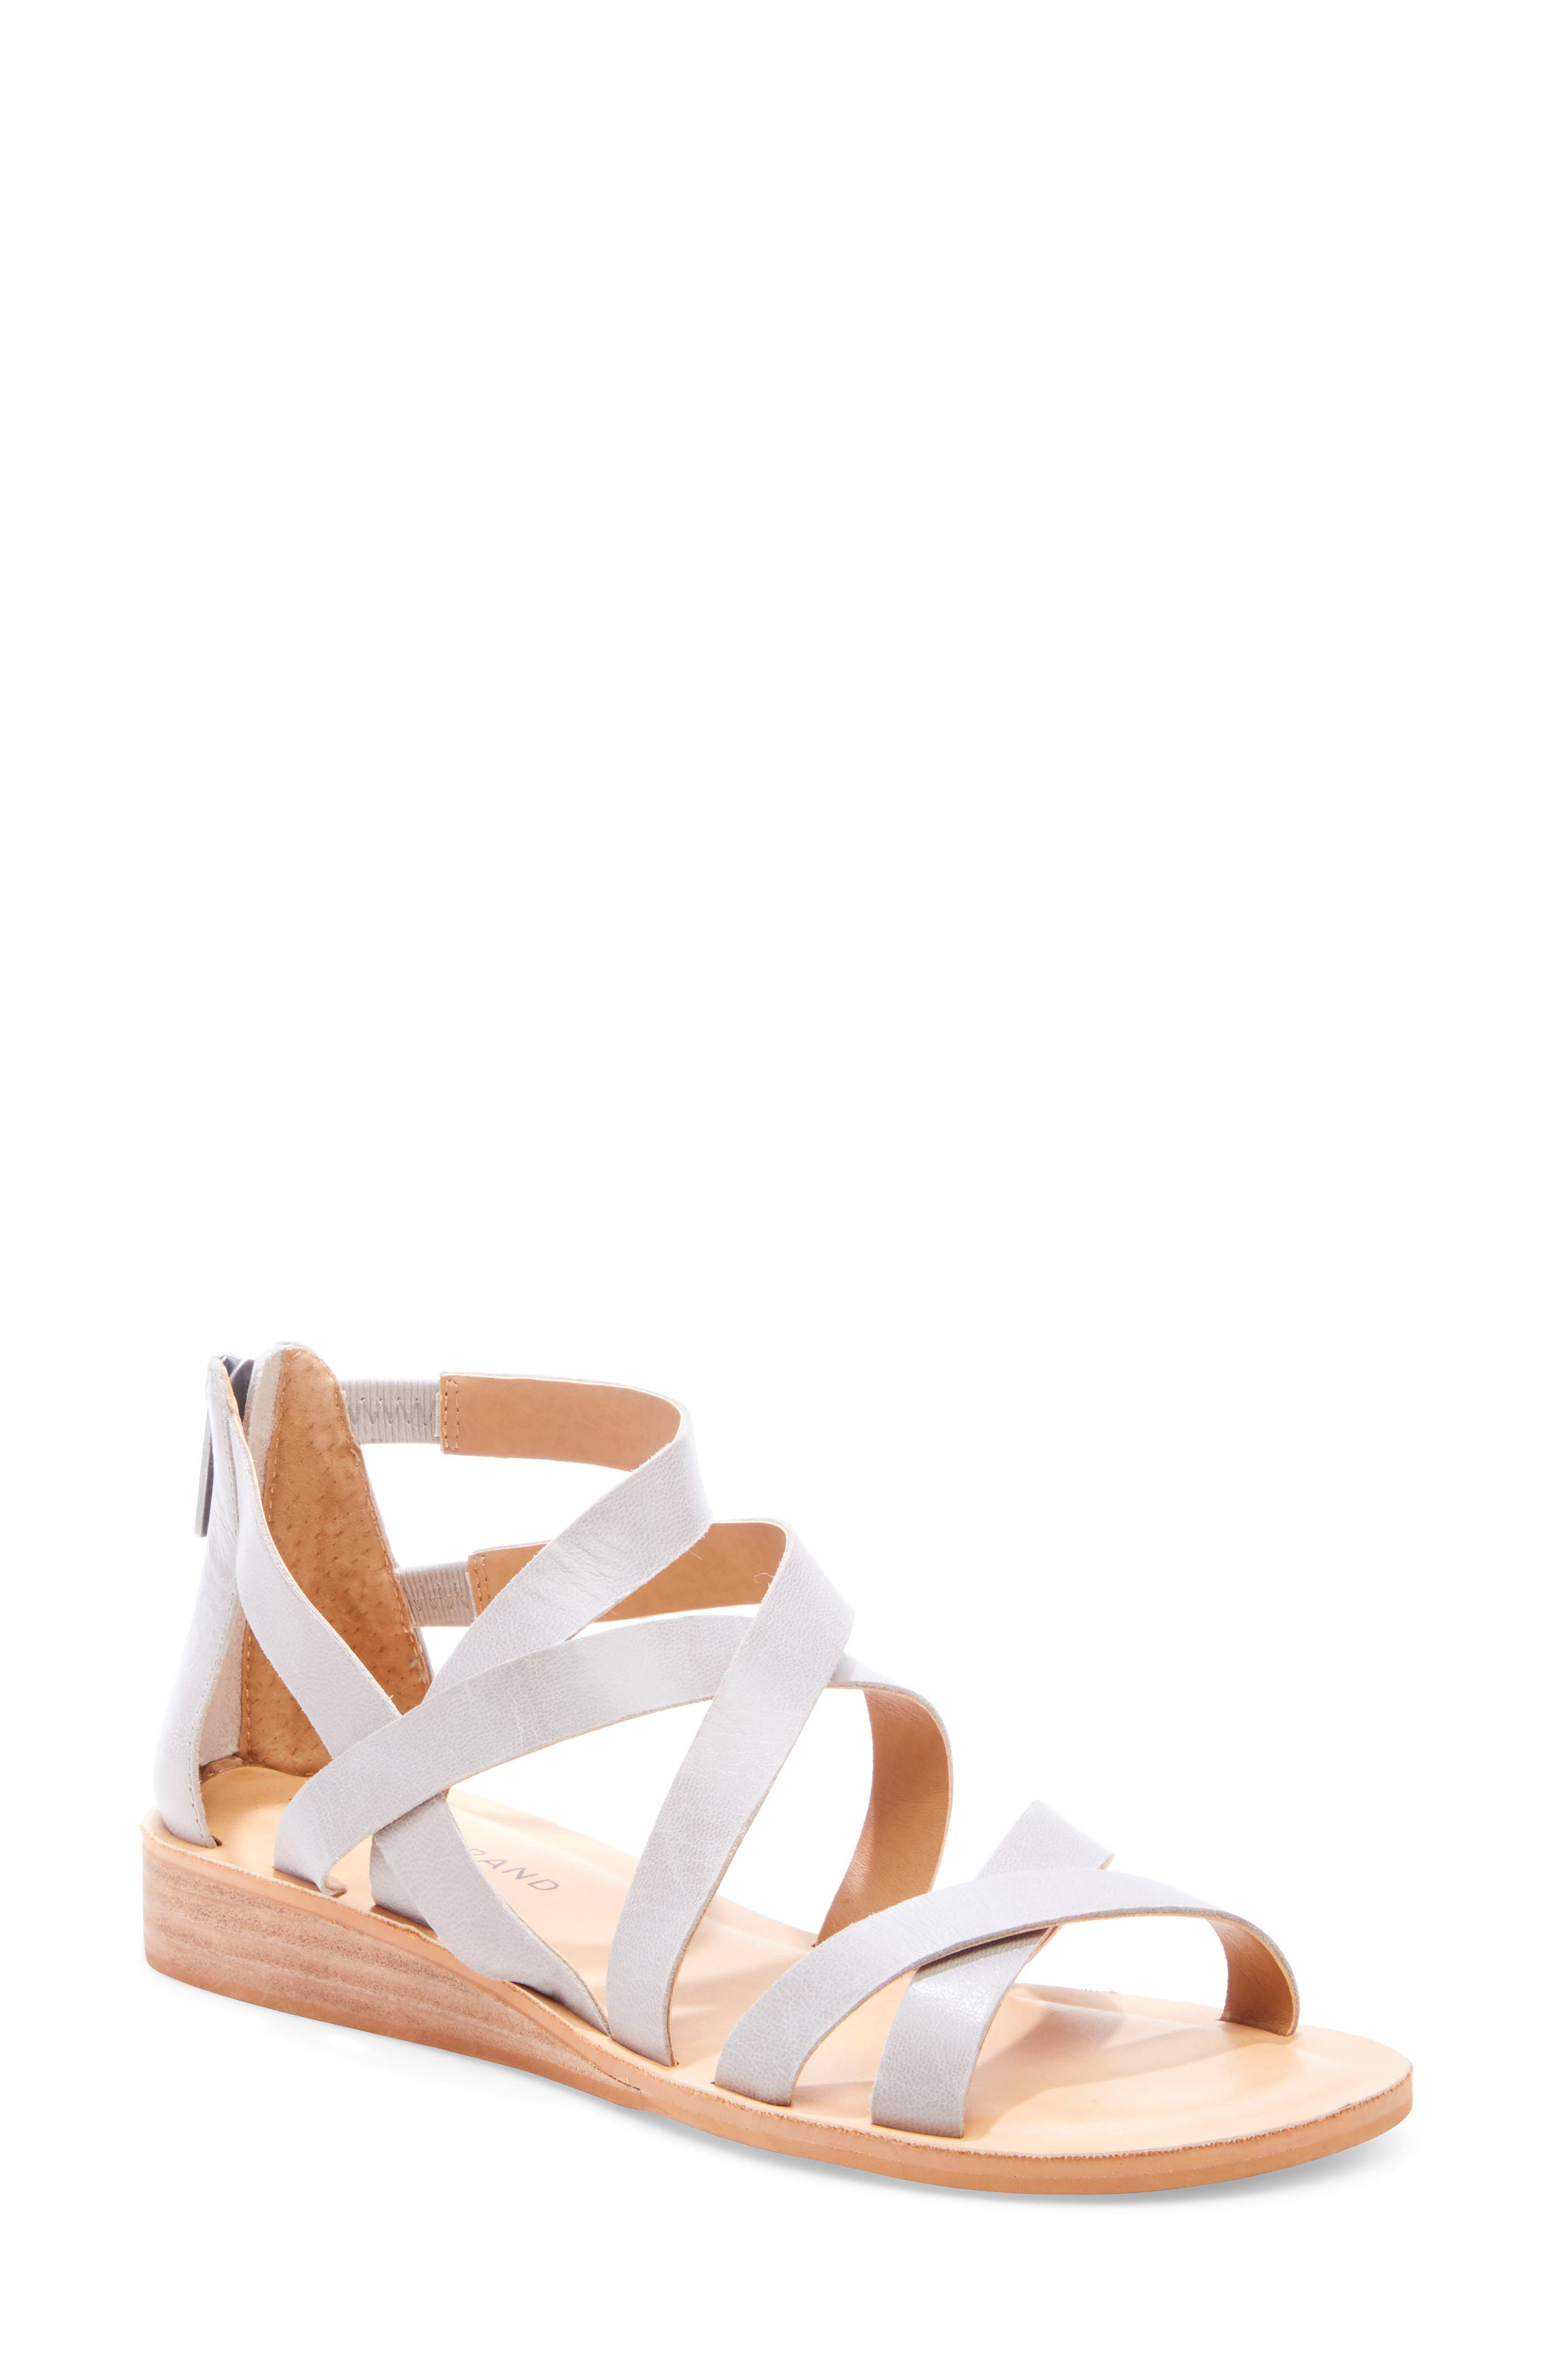 Helenka Strappy Wedge Sandal, Main, color, CHINCHILLA LEATHER